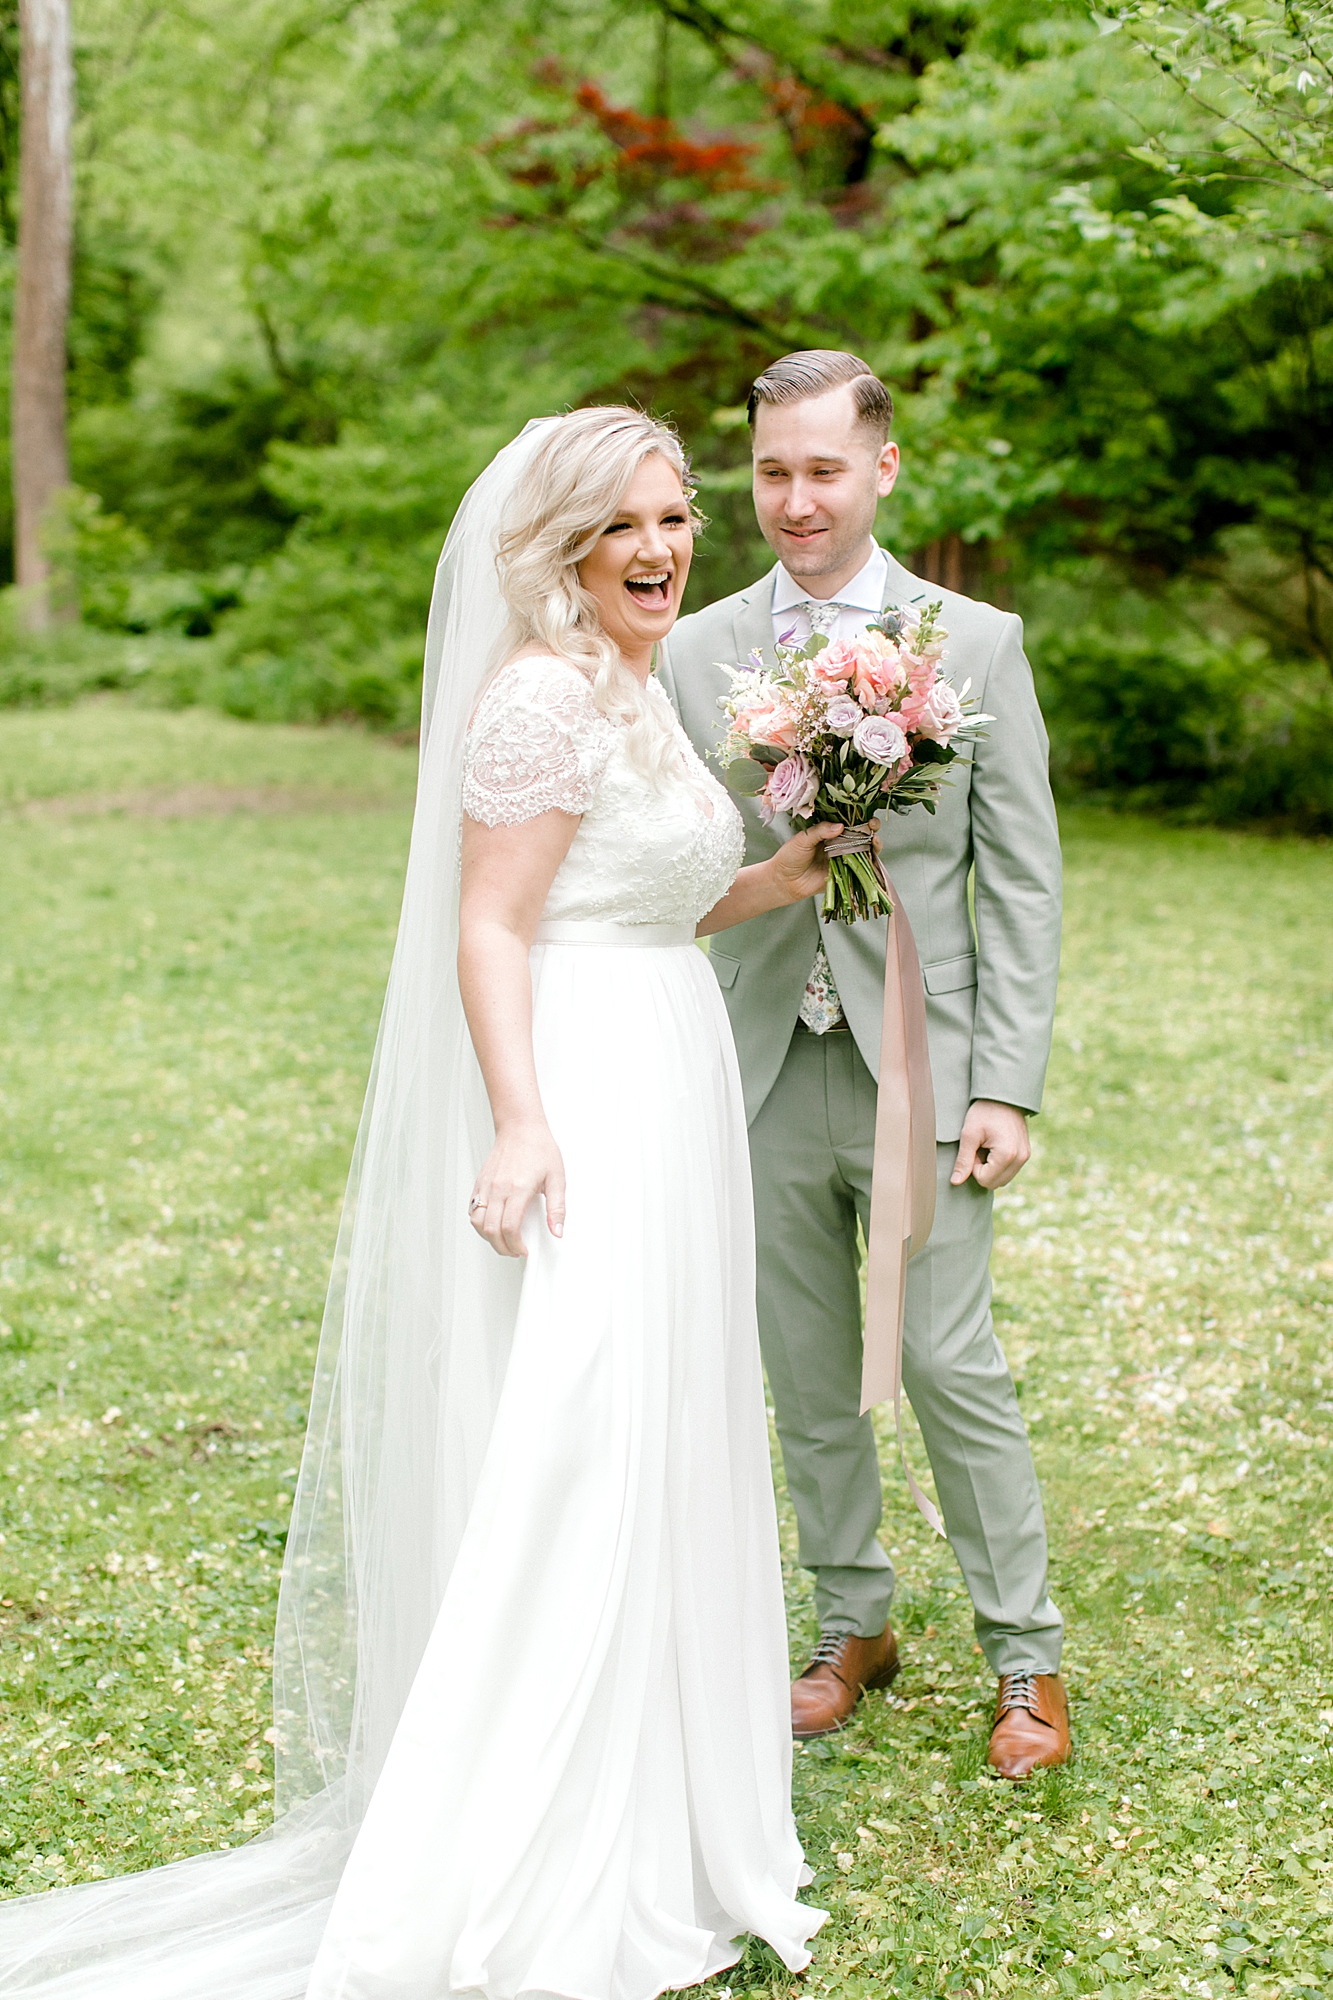 Intimate and Sweet Estate Wedding Photography by Magdalena Studios 0020